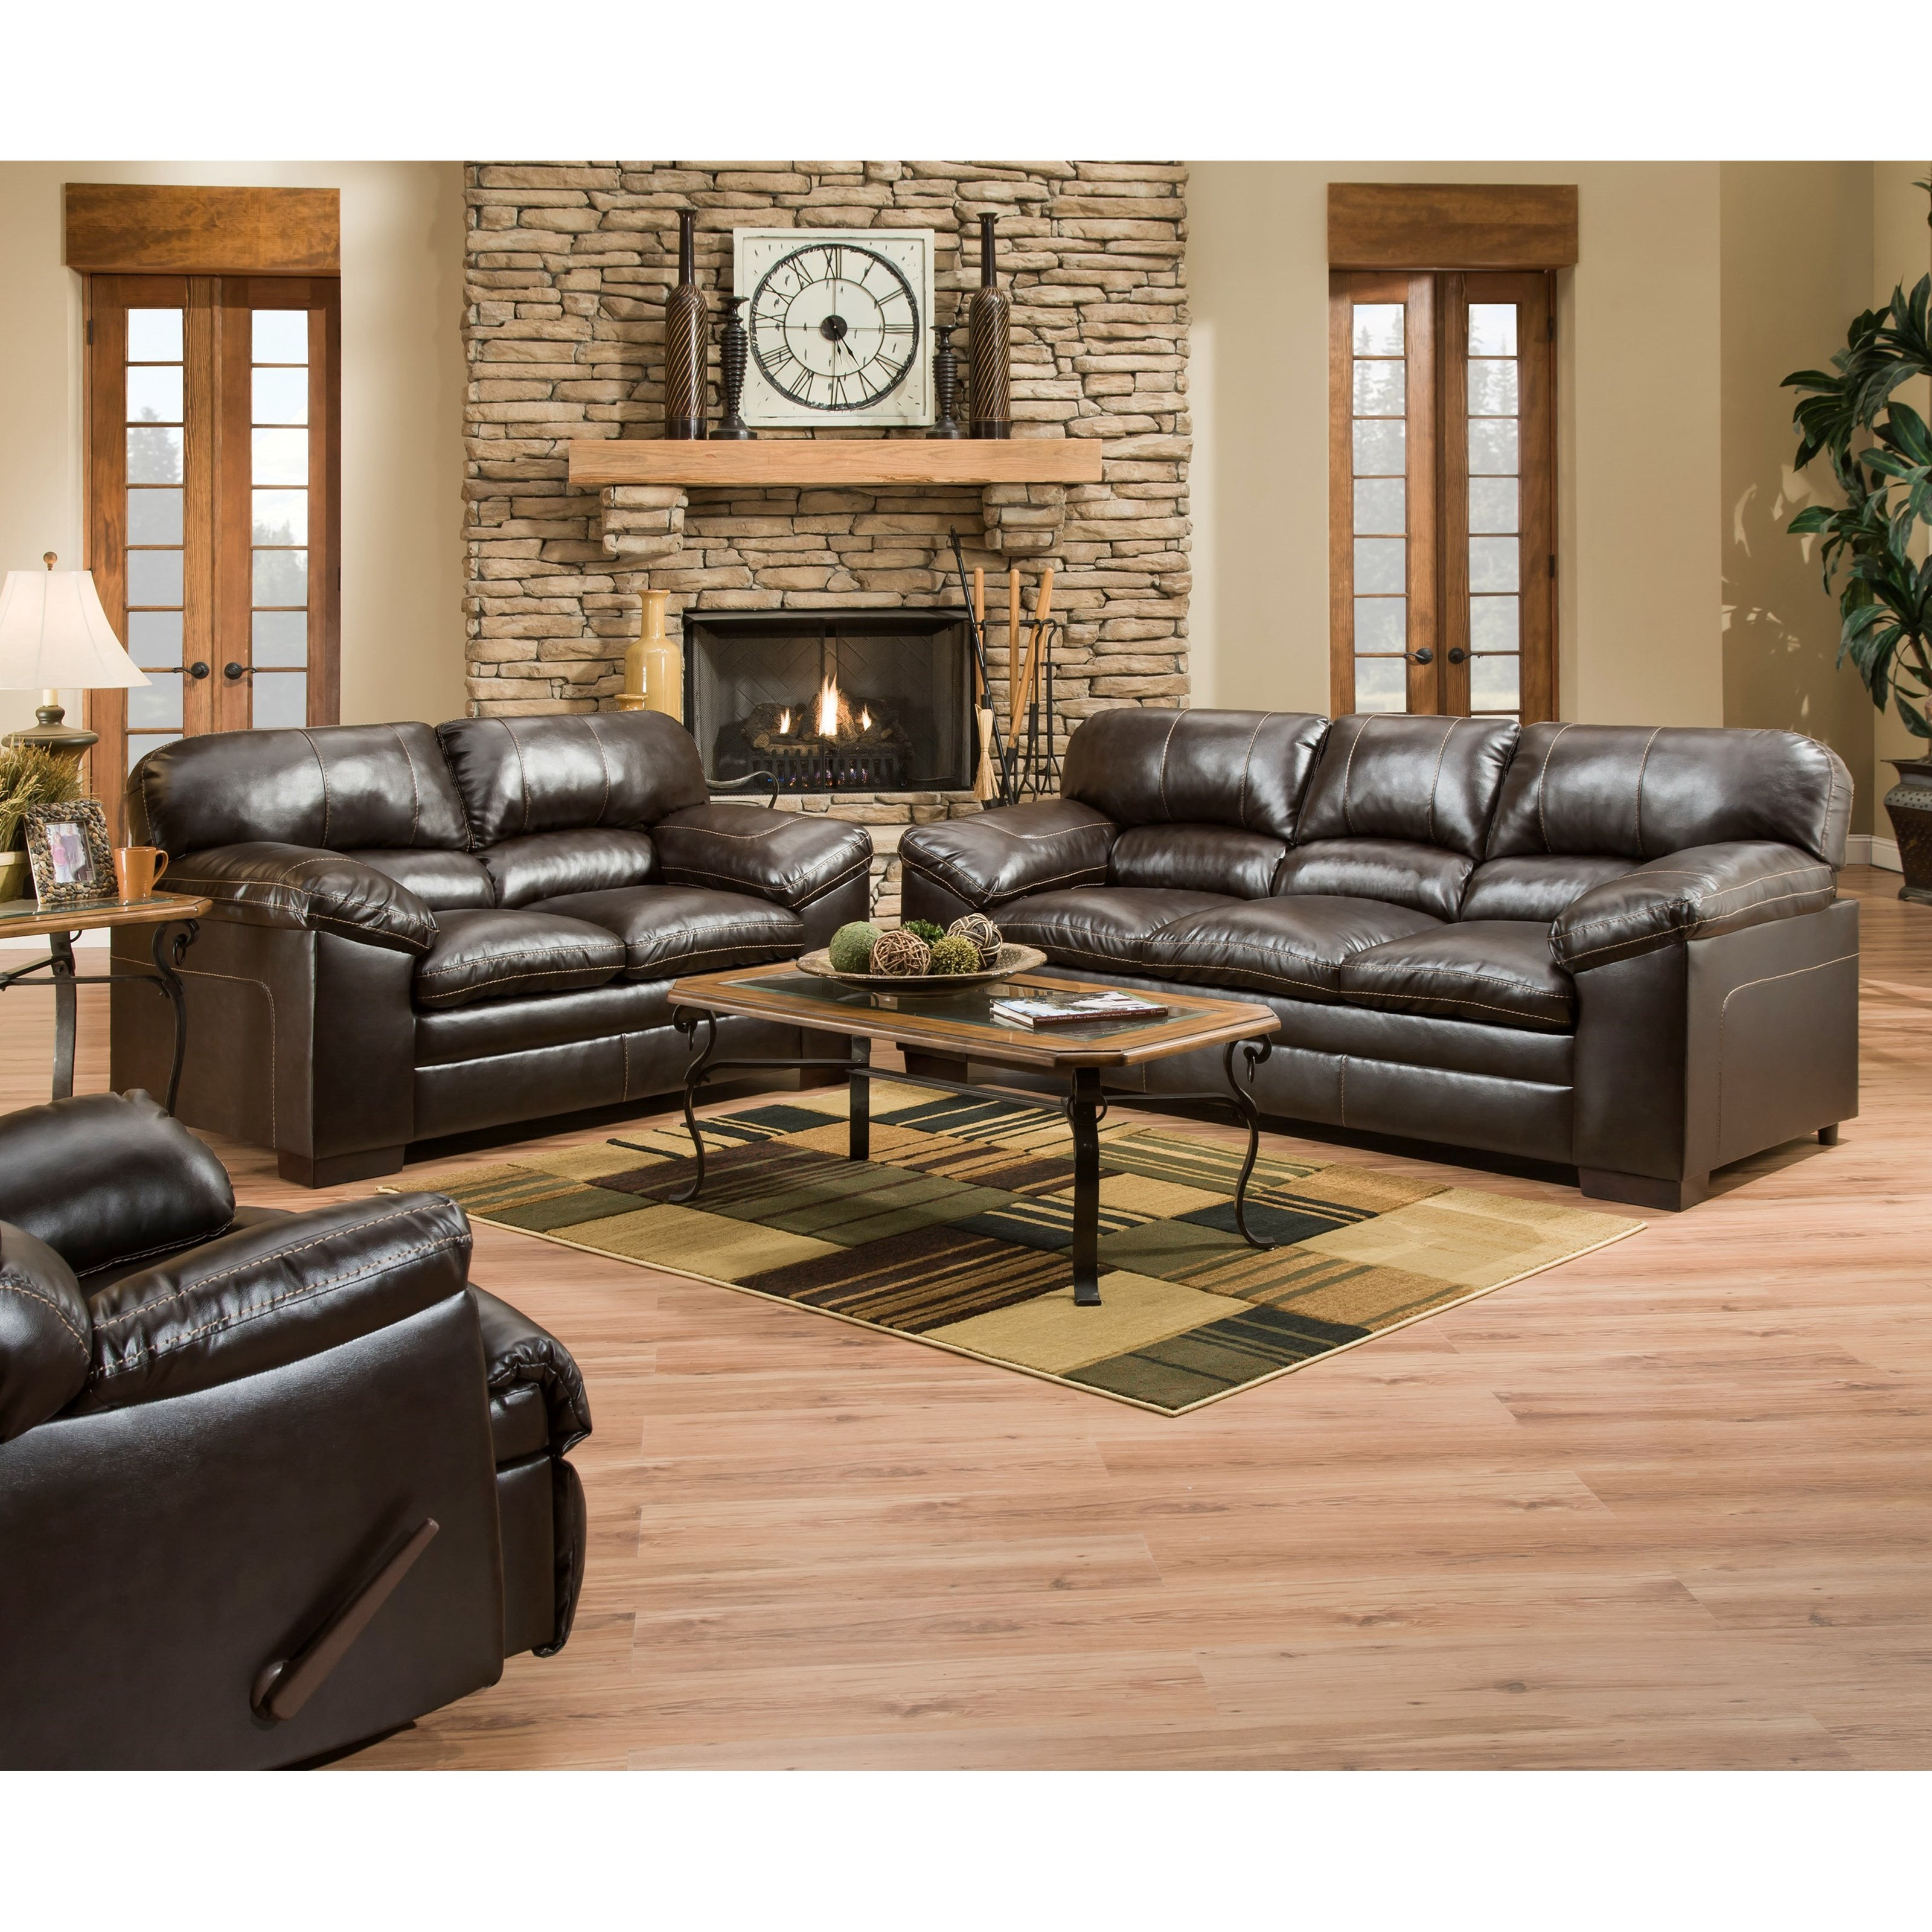 United Furniture Industries 8049 8049sofa Casual Sofa With